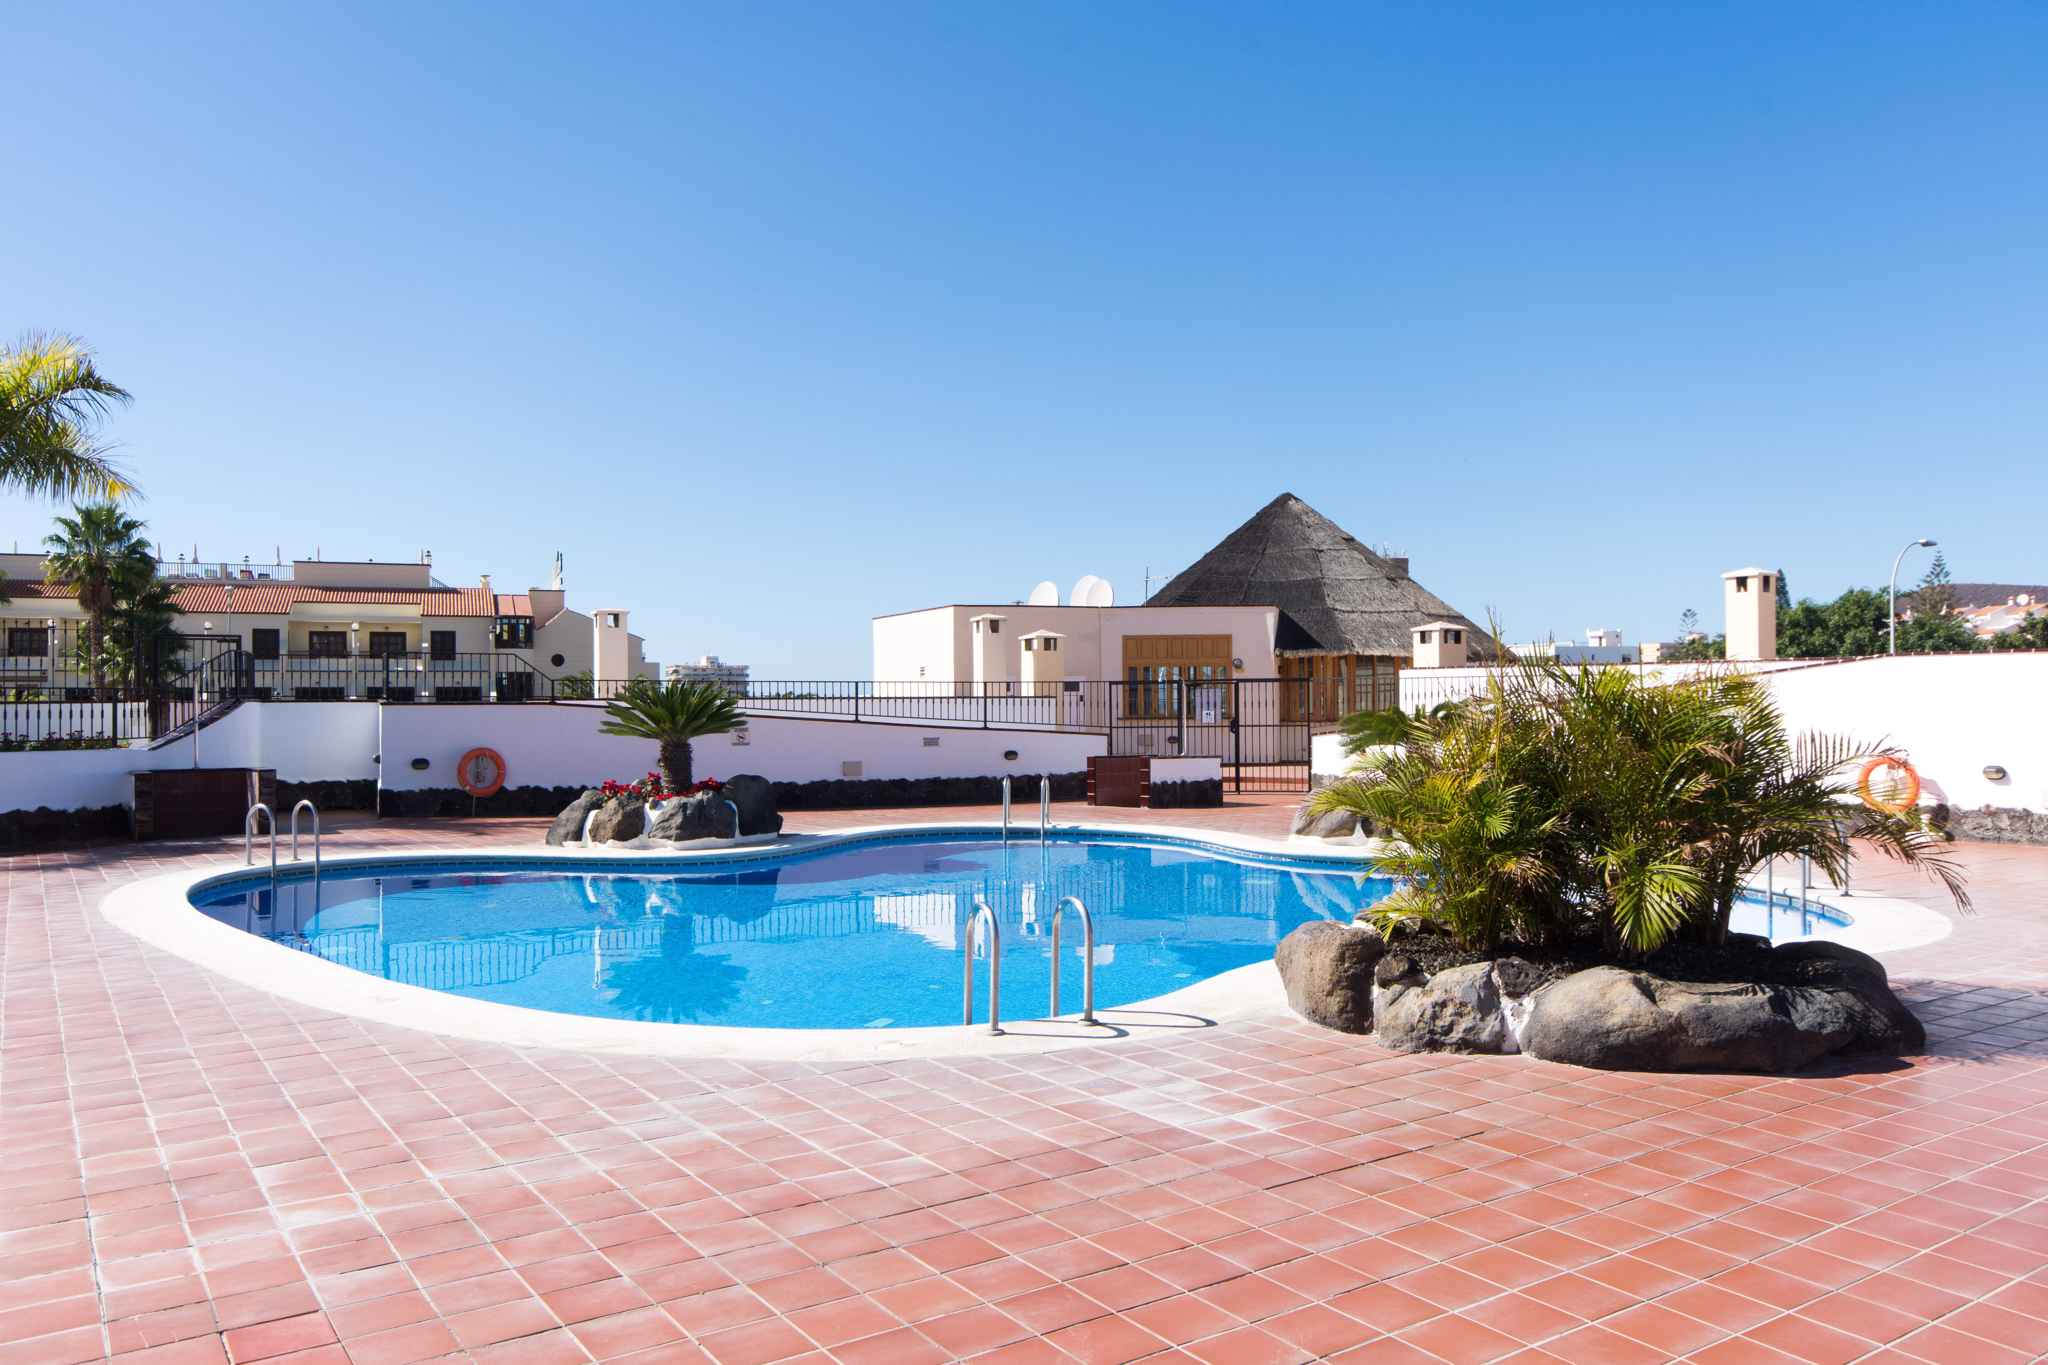 Holiday apartment mit Pool in Ferienanlage (2382979), Los Cristianos, Tenerife, Canary Islands, Spain, picture 1